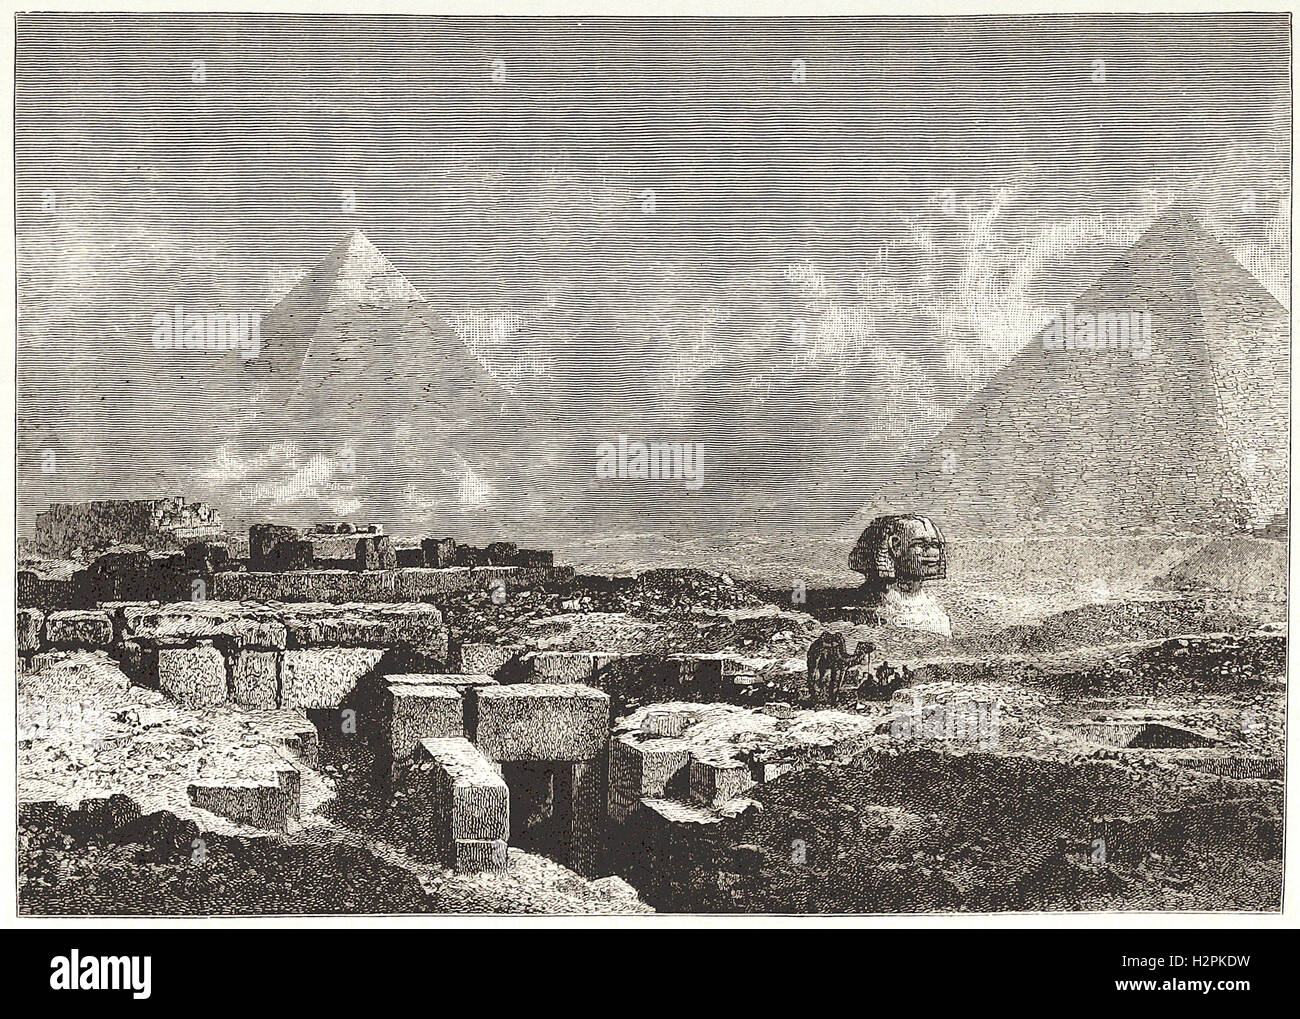 THE PYRAMIDS AND SPHINX. - from 'Cassell's Illustrated Universal History' - 1882 - Stock Image